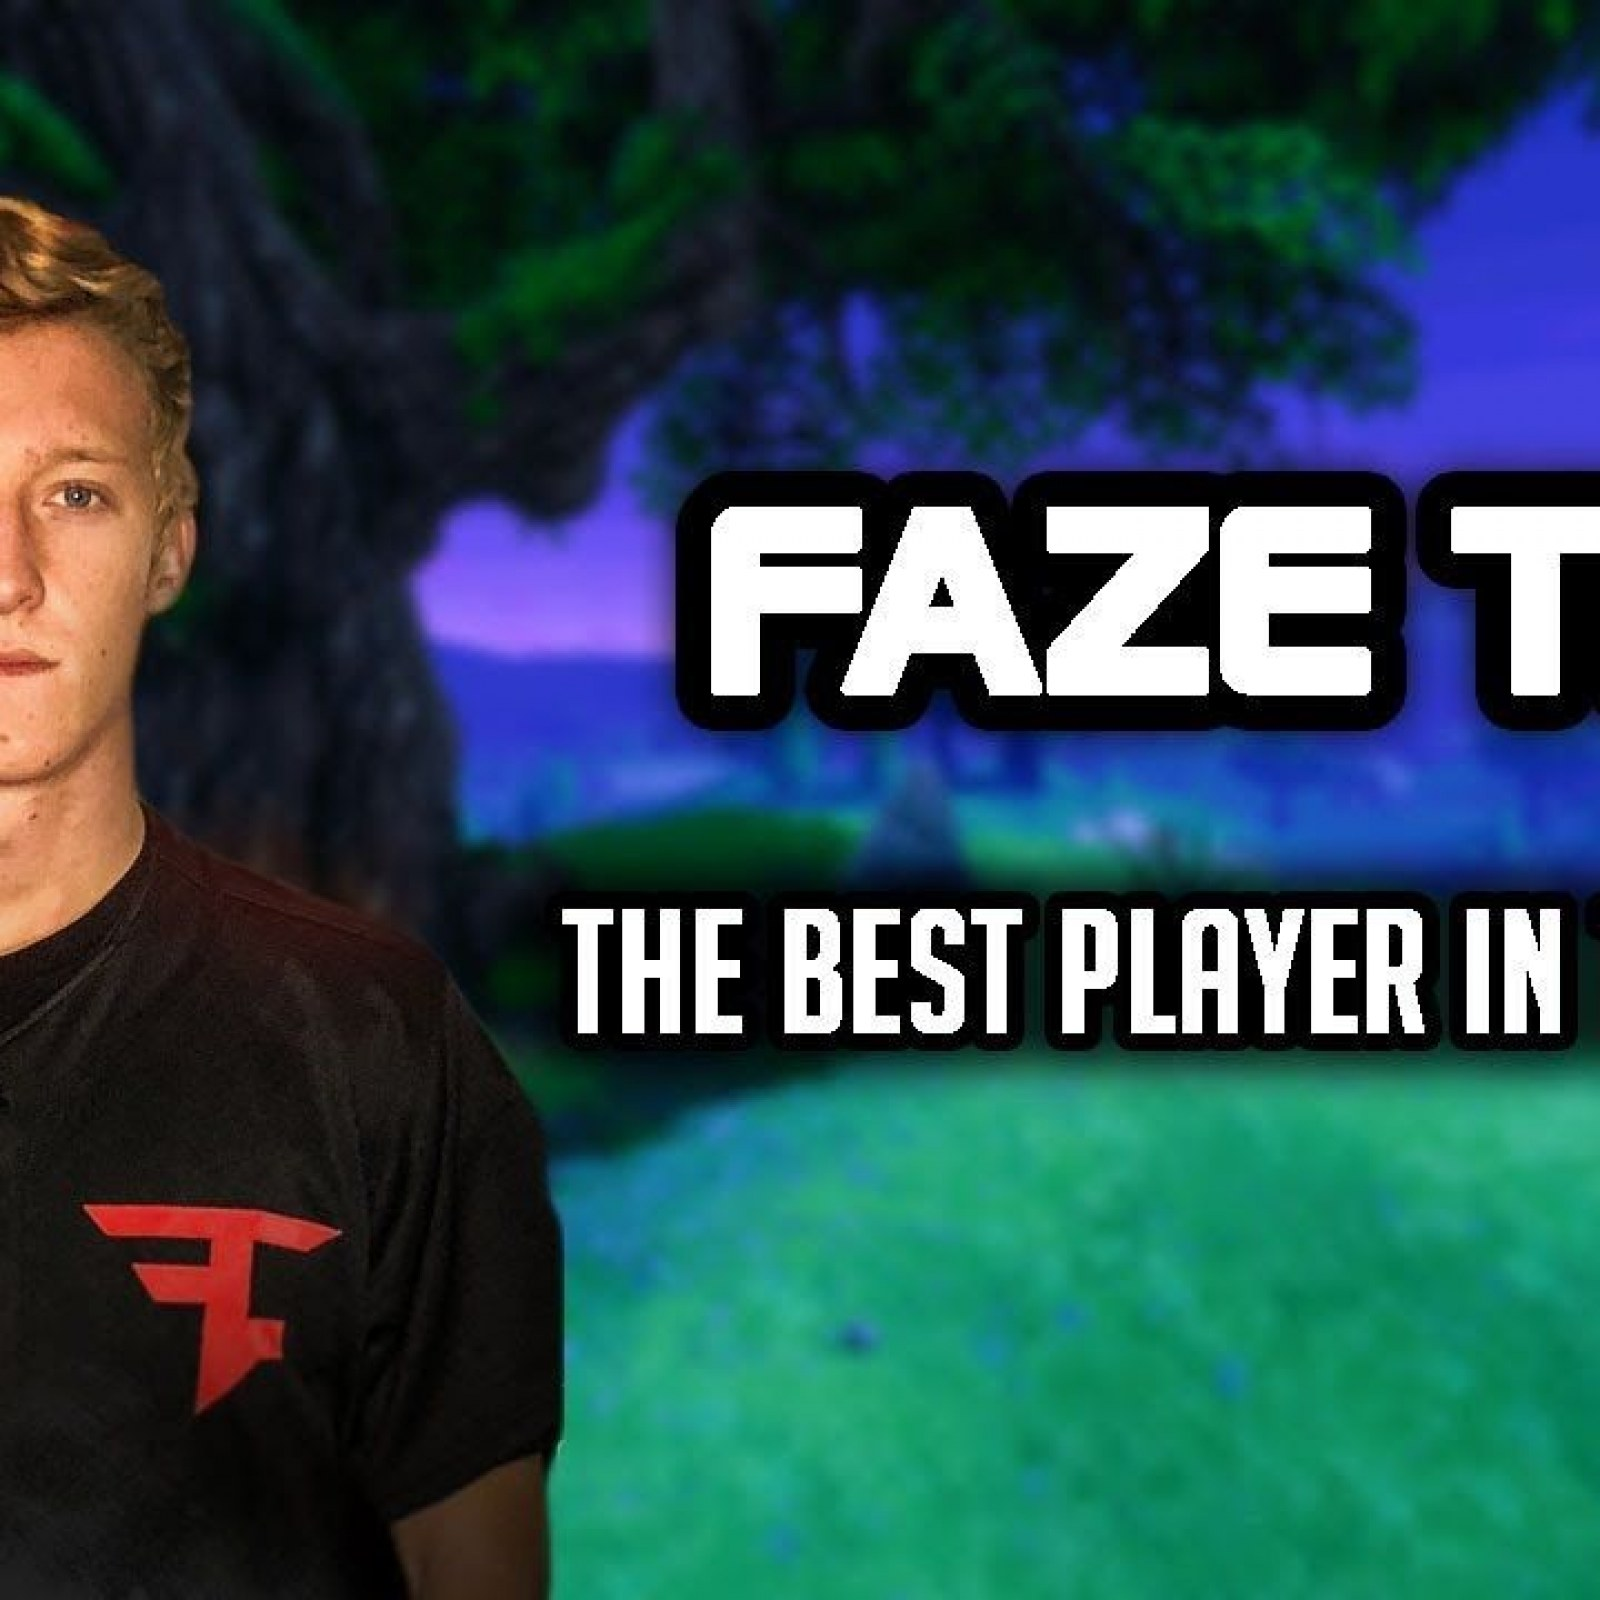 Fortnite' Streamer FaZe Tfue Banned From Twitch After Racial